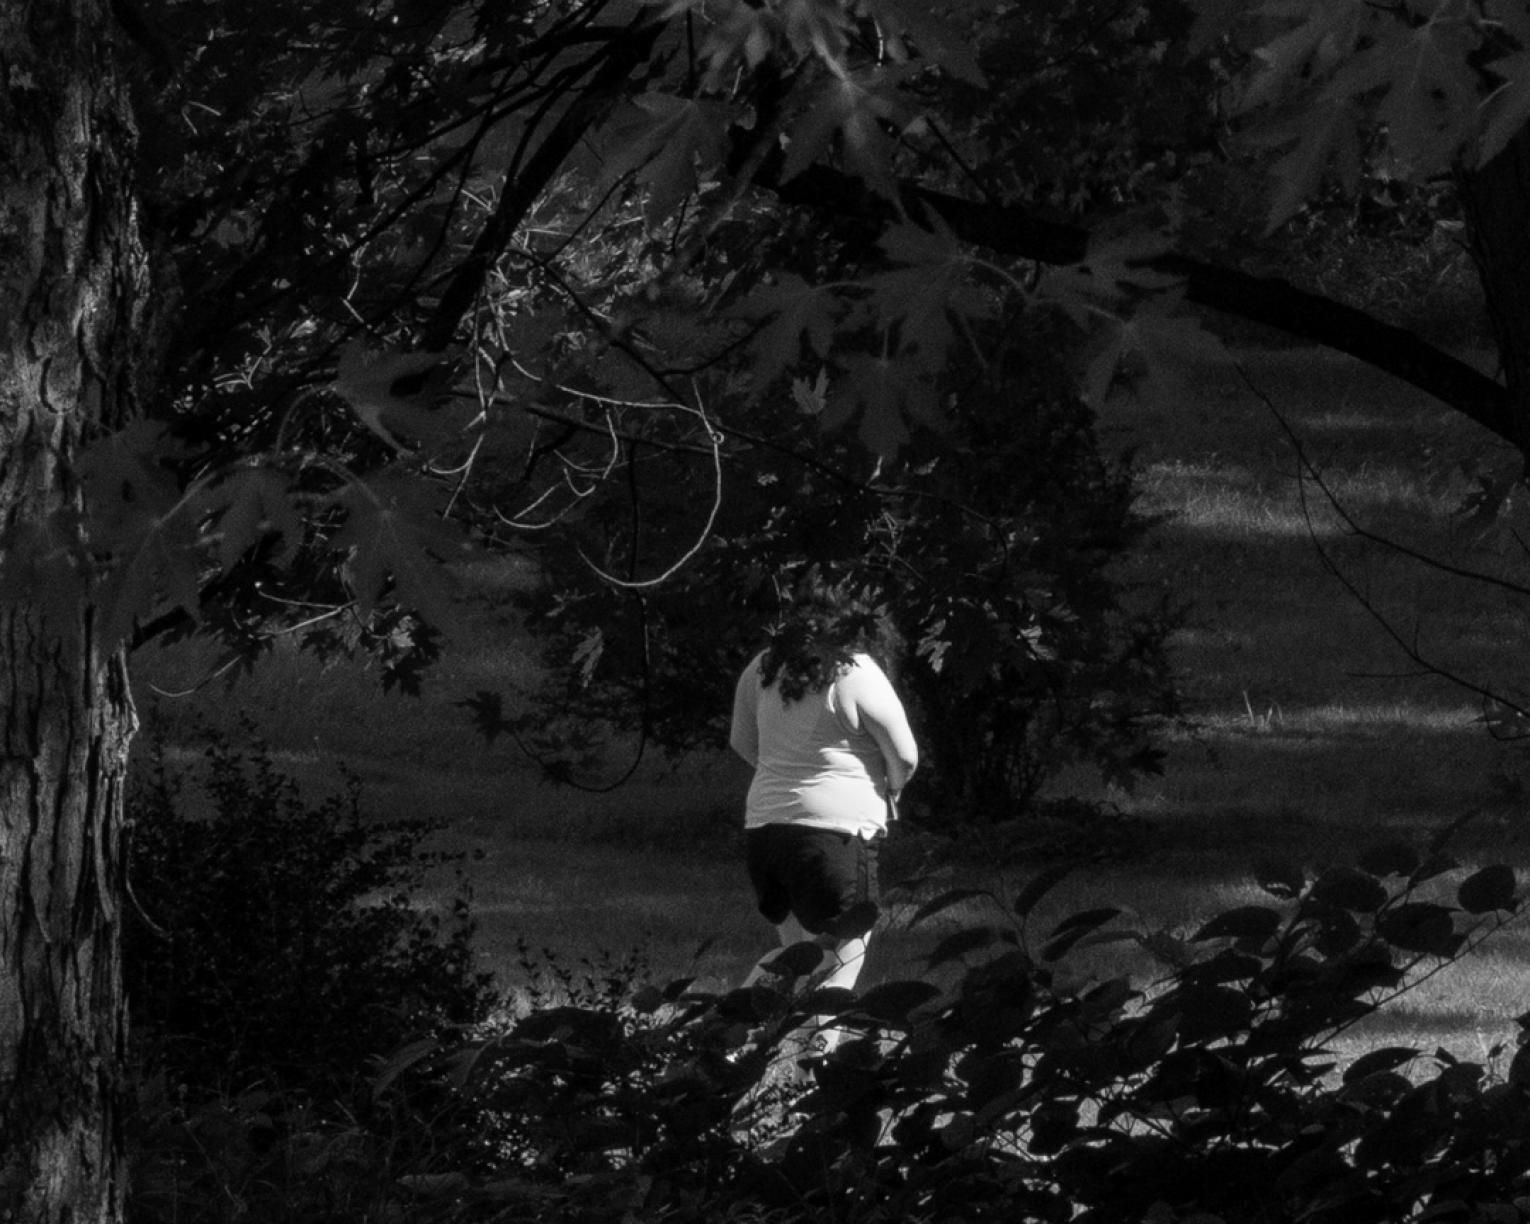 Black and white phot of a woman walking in shadows of trees and leaves